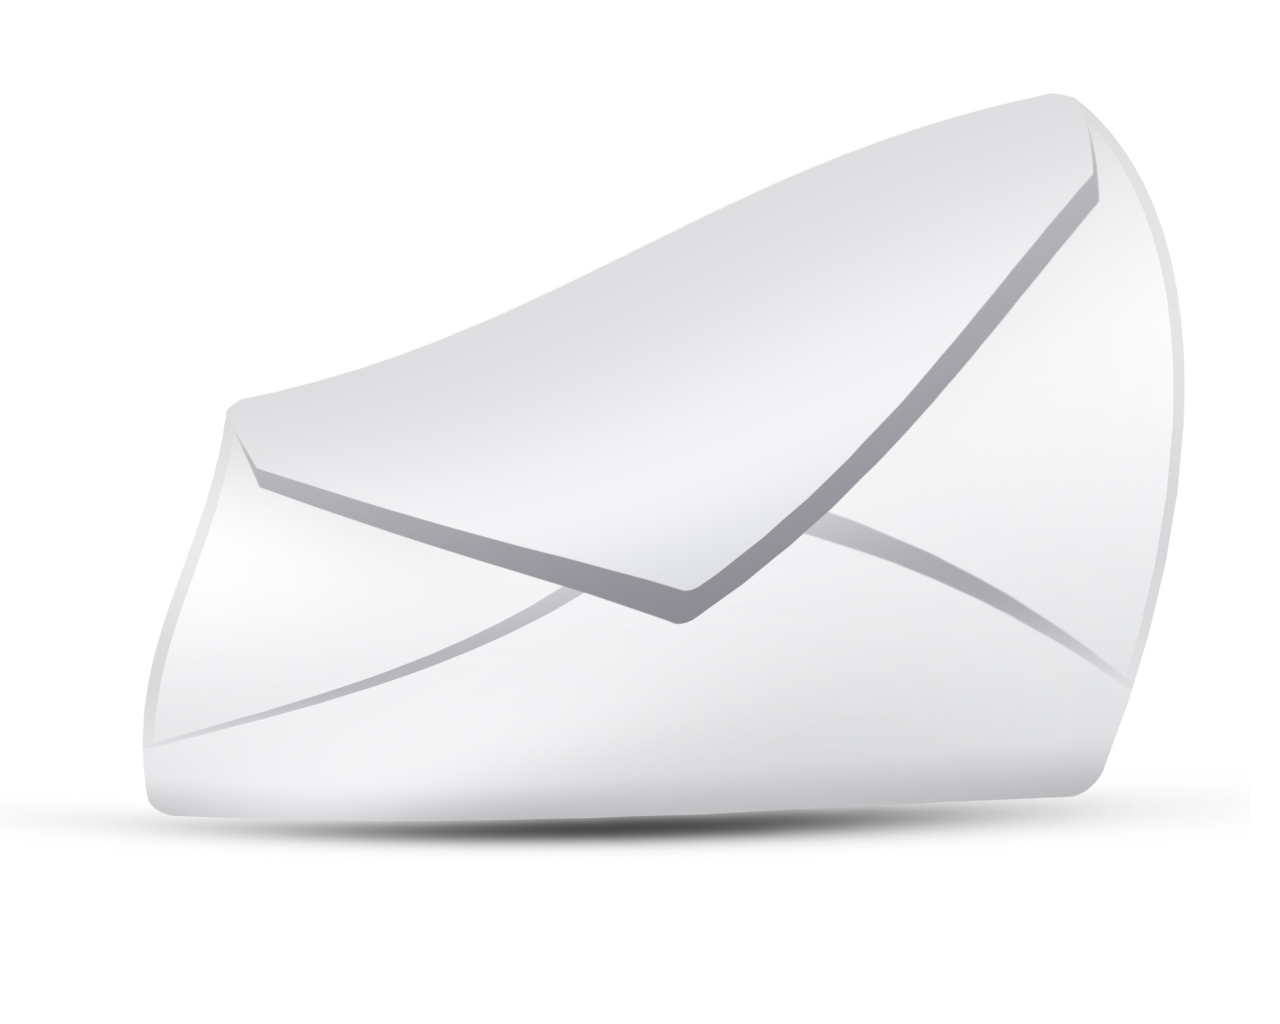 expanding email message packet